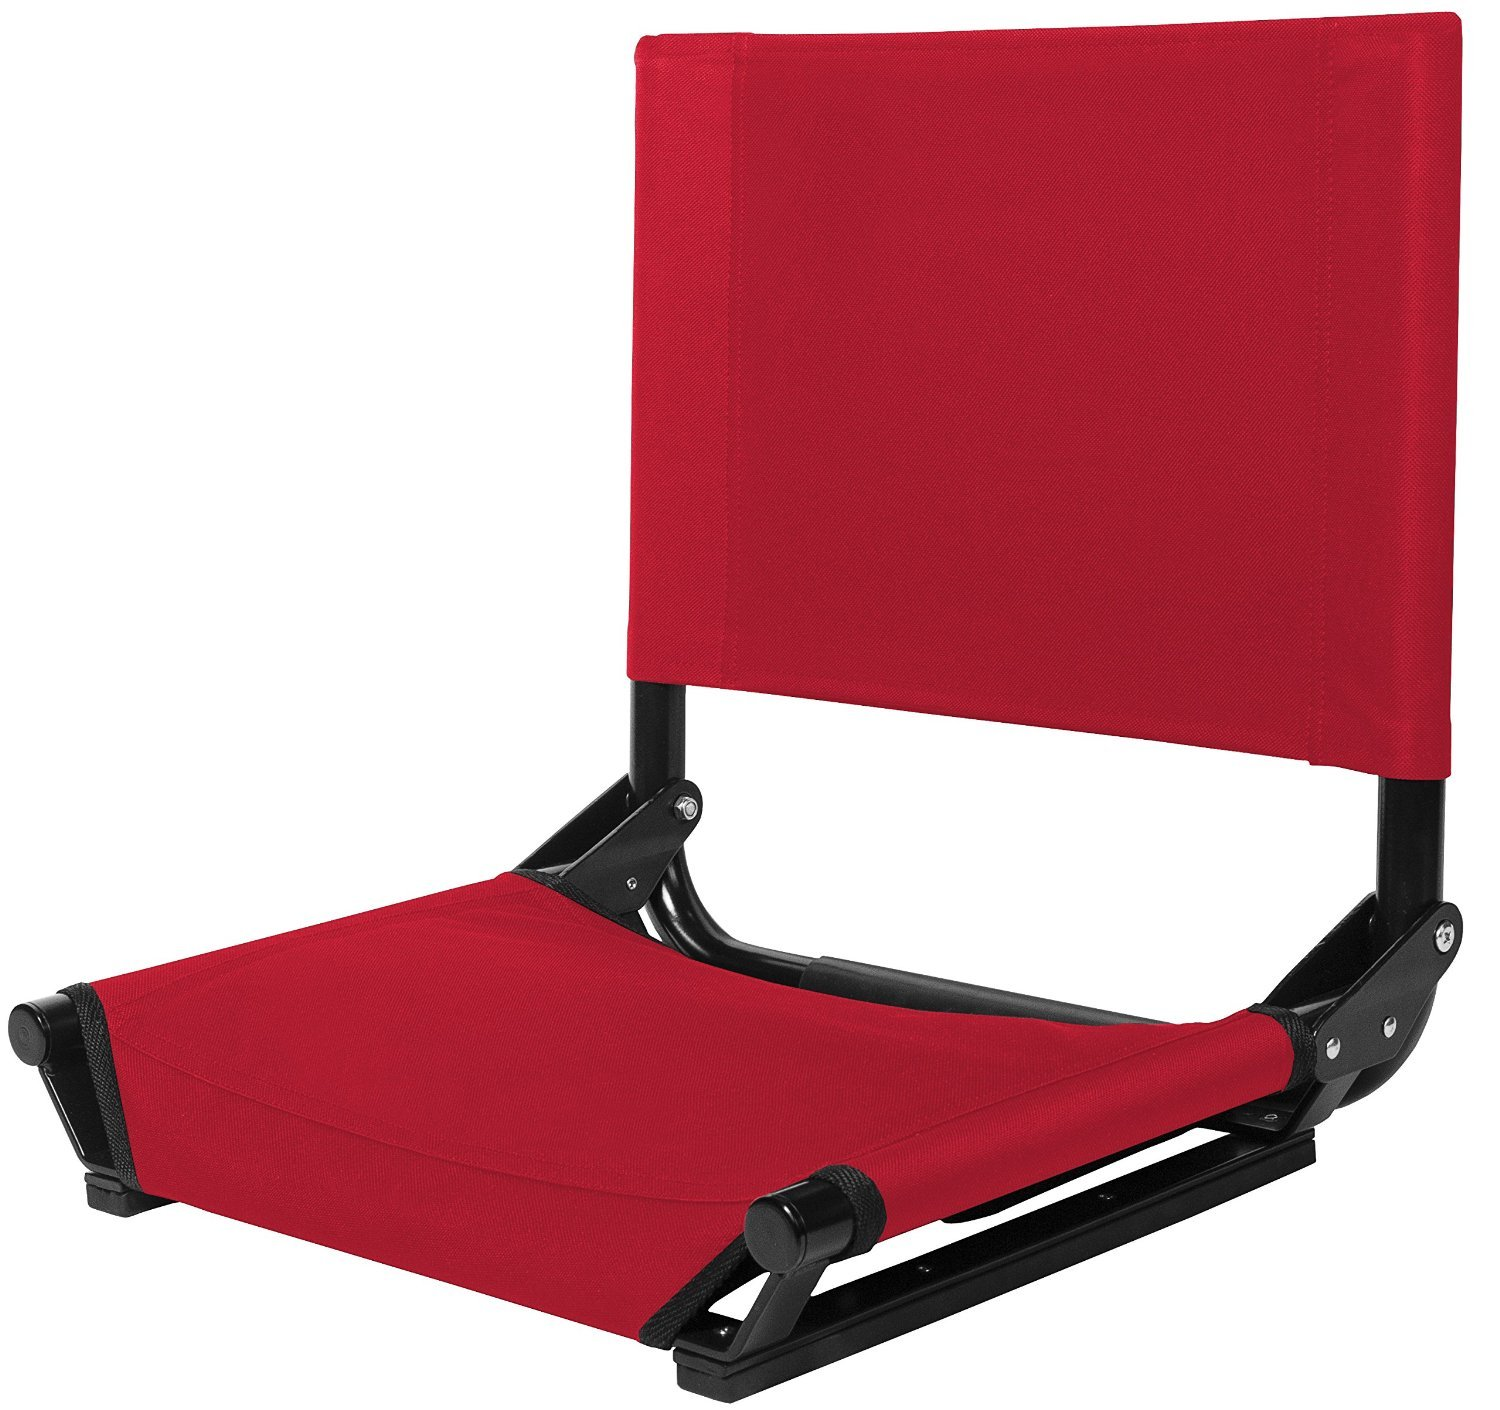 Best Travel Stadium Seats With Padded Cushions 2018 2019